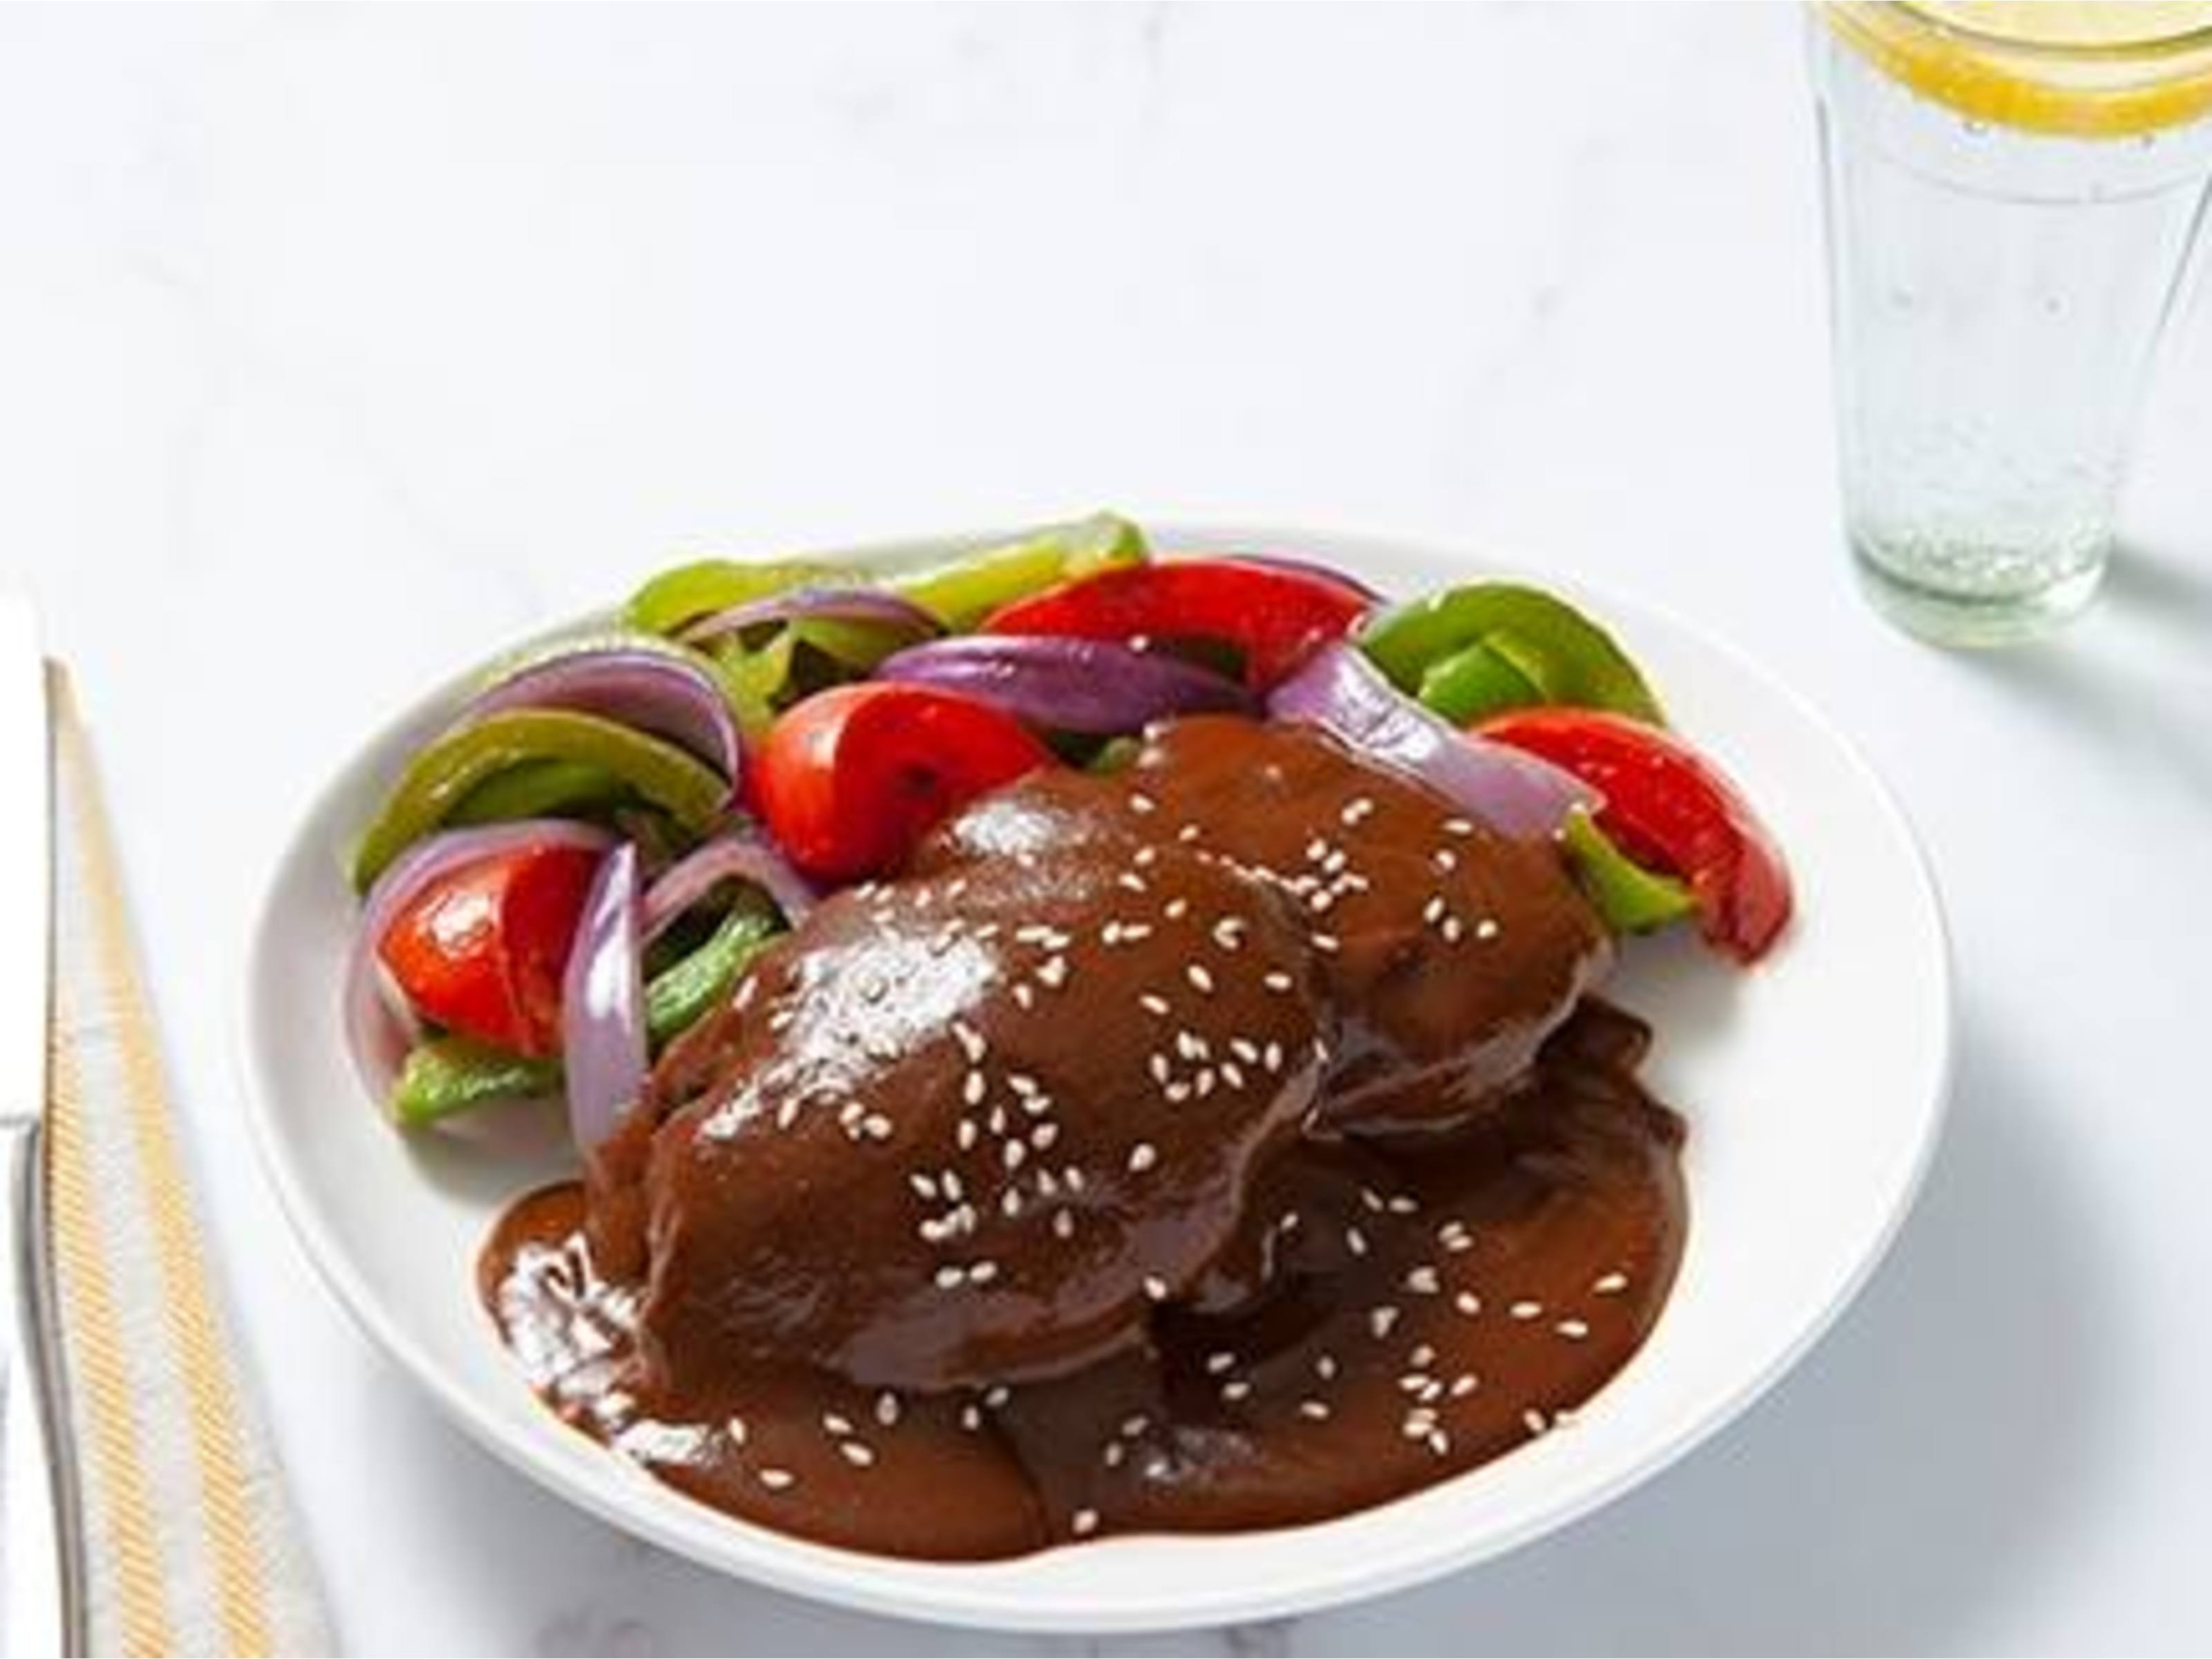 Chicken Mole with Sautéed Vegetables